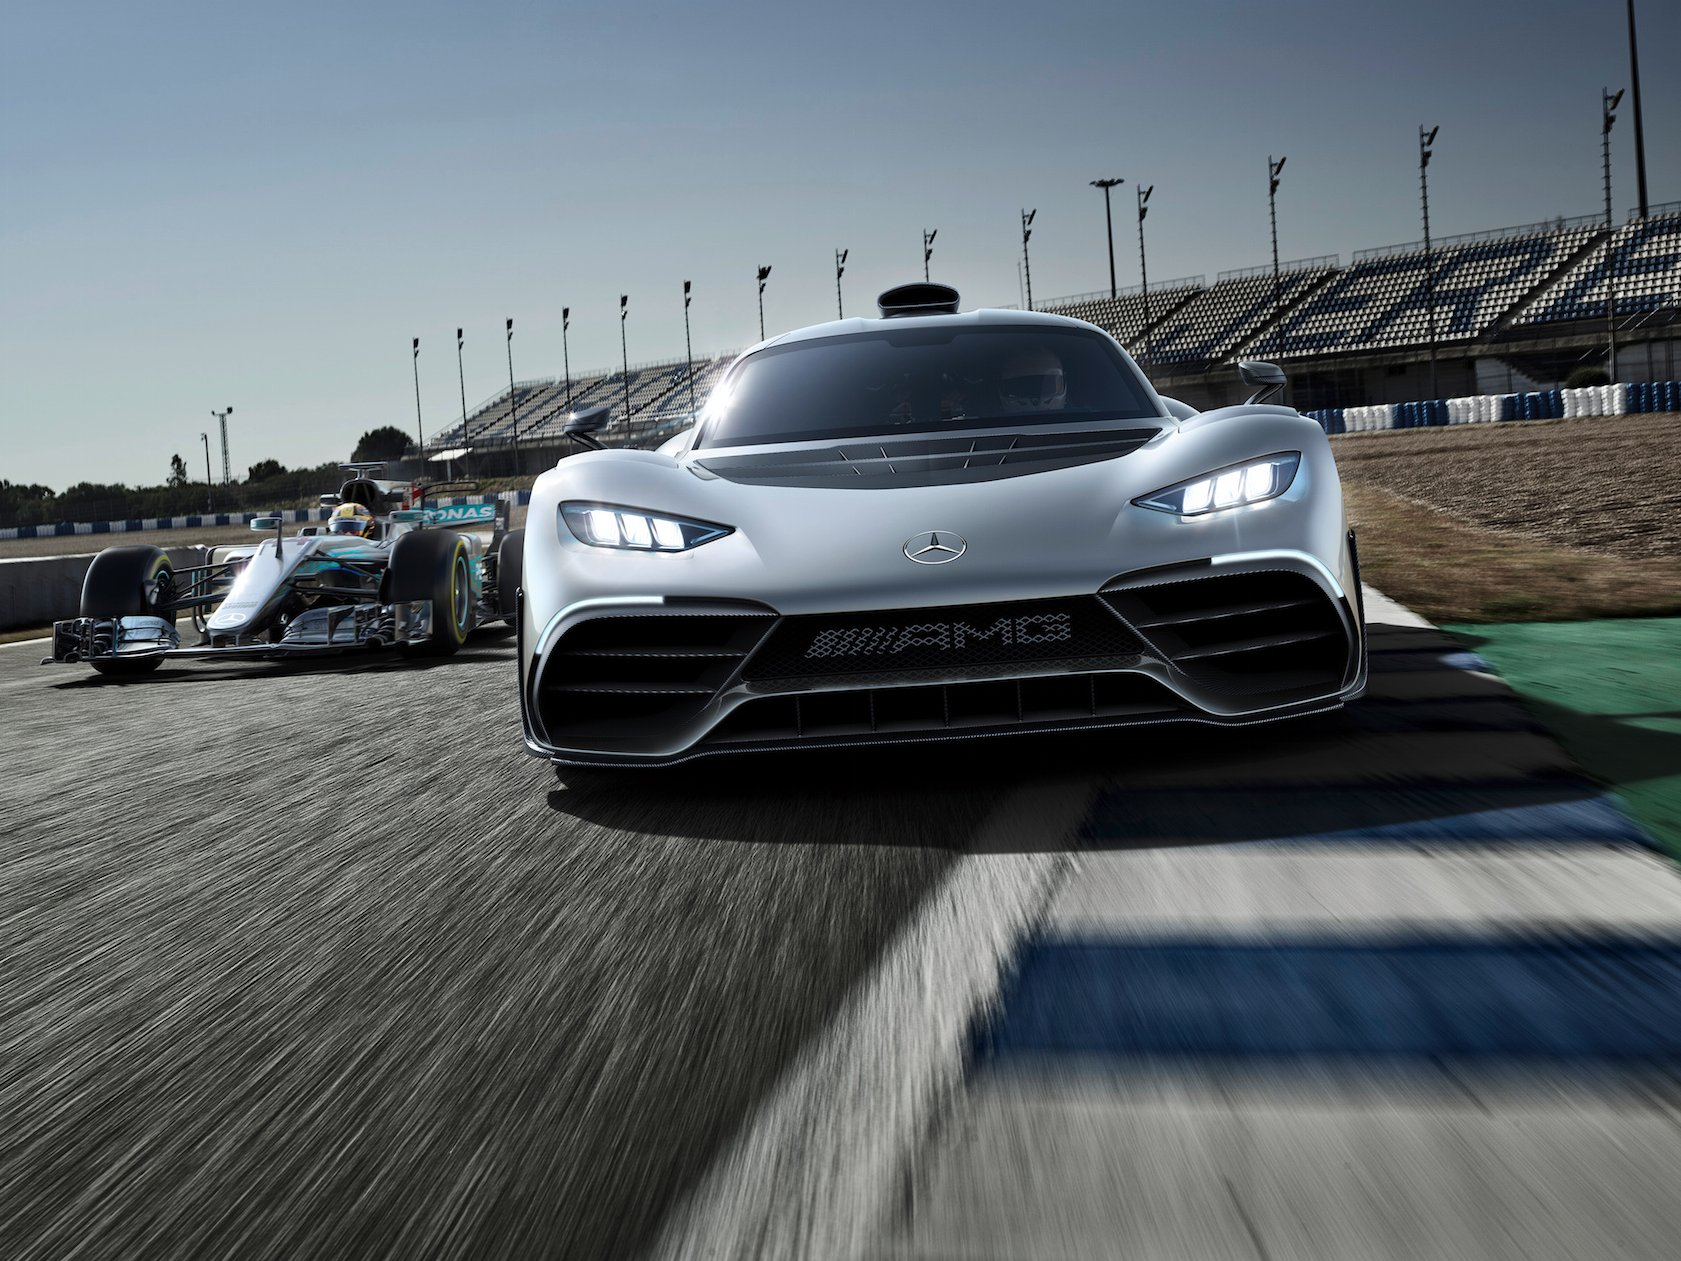 Mercedes AMG Project One Hyper Car Unveiled - newslibre.com